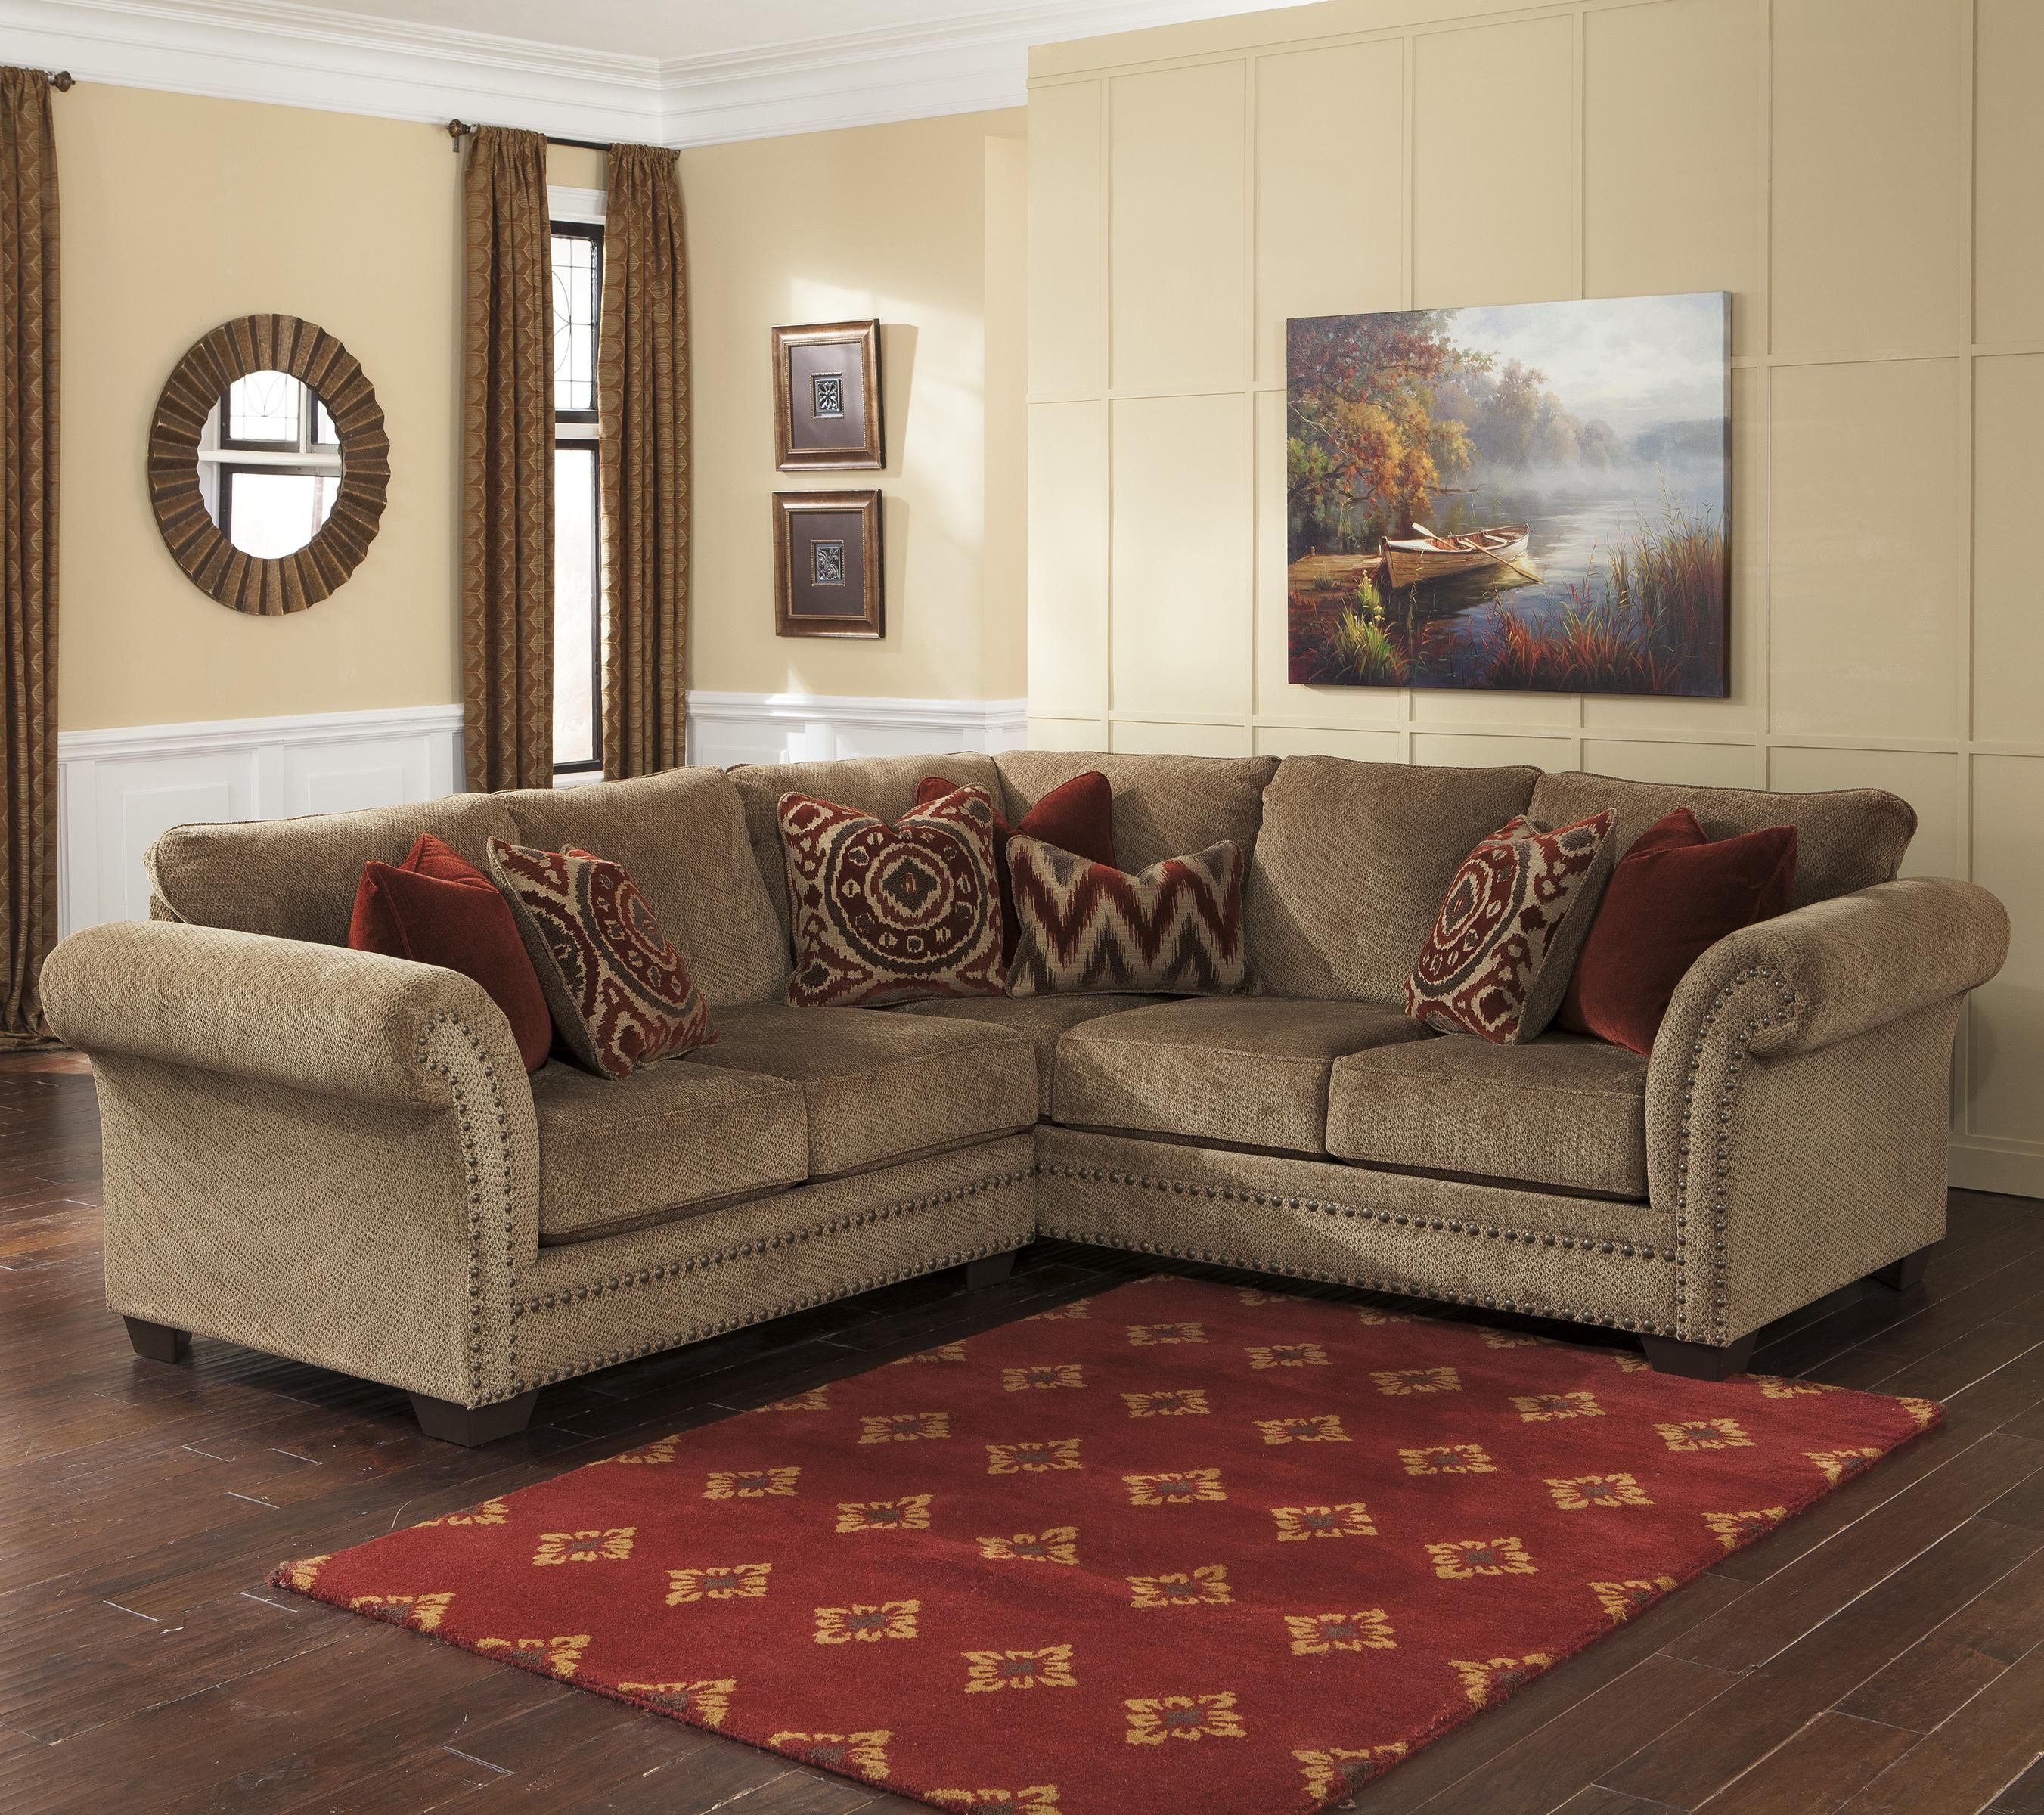 Best Grecian Amber 2 Piece Sectional With Left Loveseat By Benchcraft Living Room Furniture 400 x 300